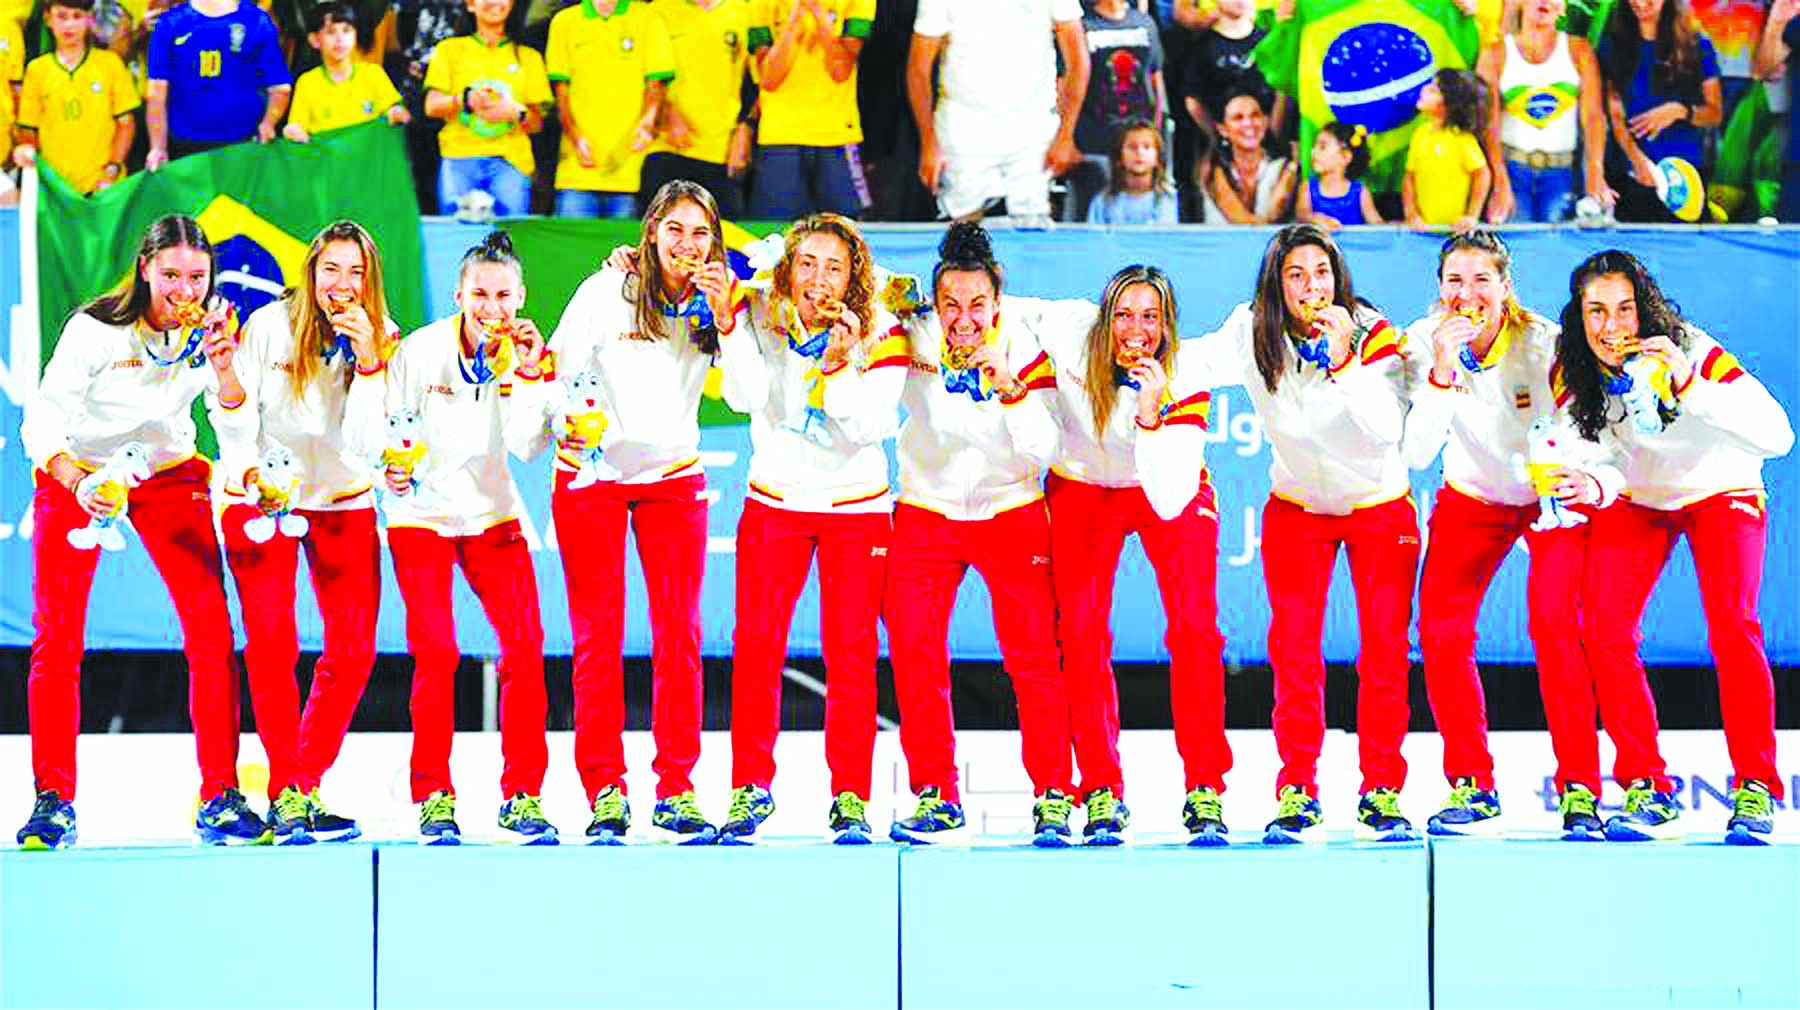 Gold medallists, players of Spain, pose for photos during the awarding ceremony of the women's beach soccer at the 1st ANOC World Beach Games in Doha, capital of Qatar on Wednesday.